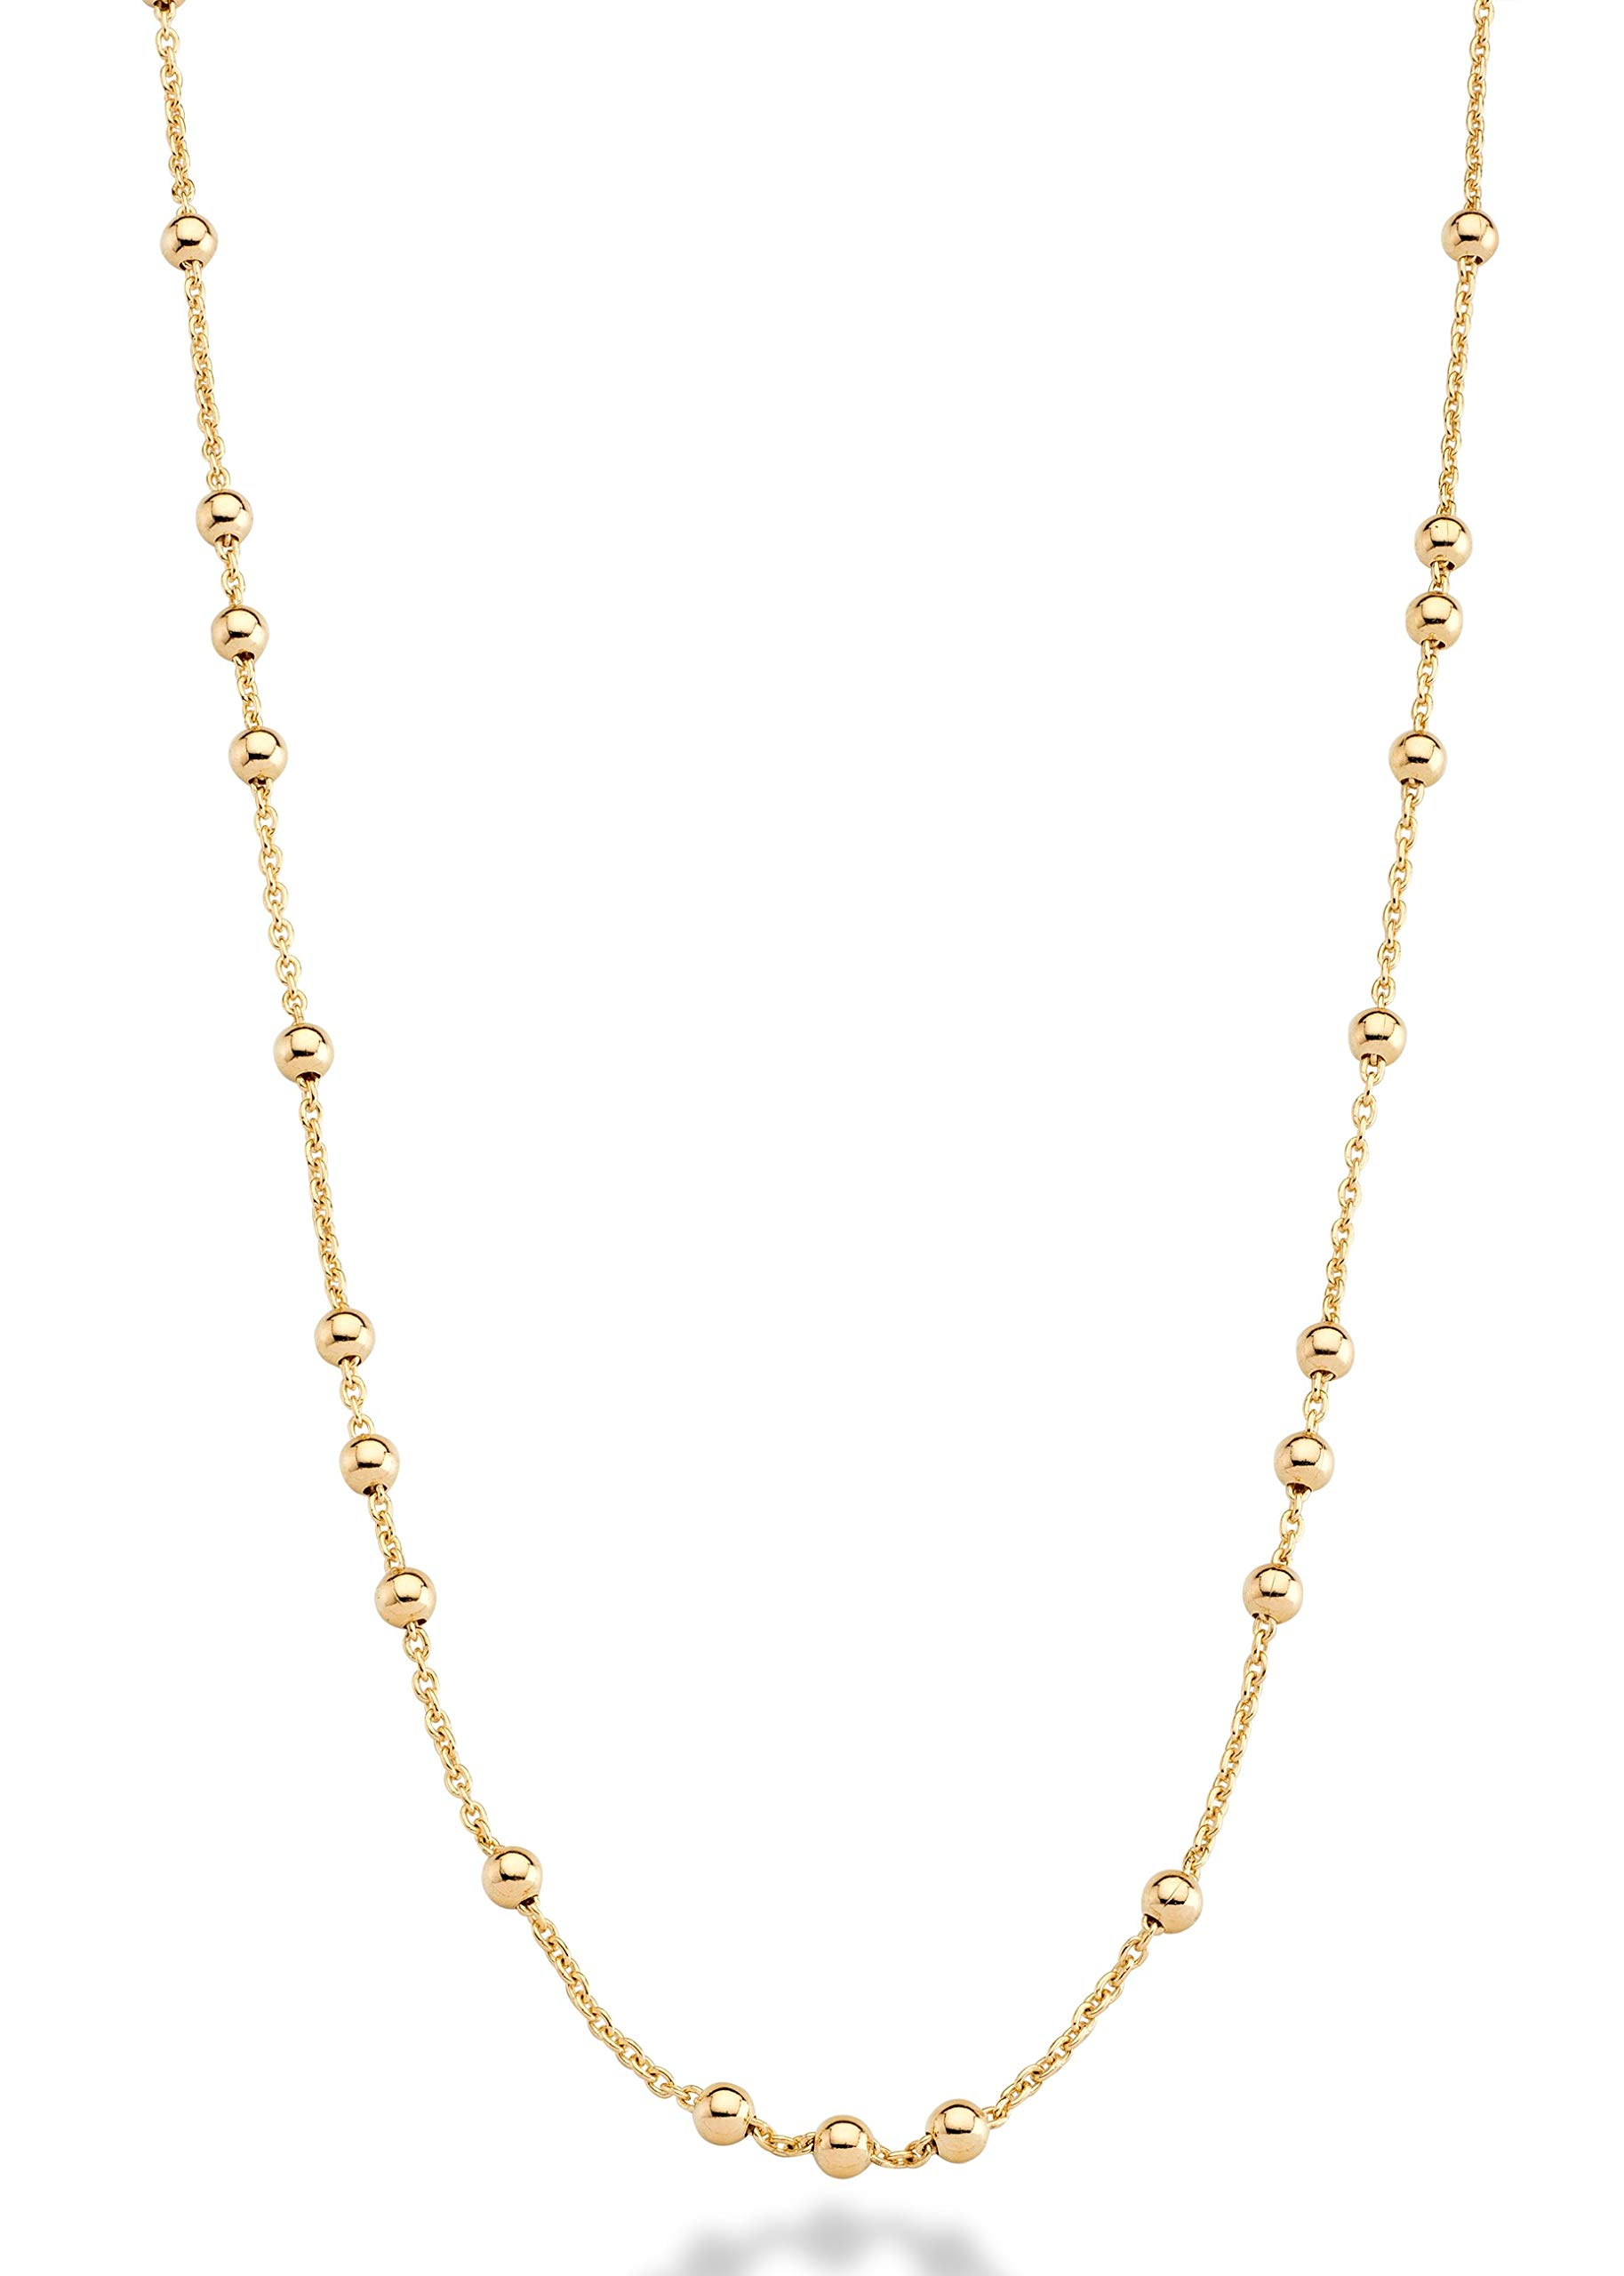 MiaBella 18K Yellow or Rose Gold Plated Italian Beaded Ball Rosary Long Wrap Layering Station Chain Necklace for Women, 60'' (Yellow-Gold-Plated-Bronze) by MiaBella